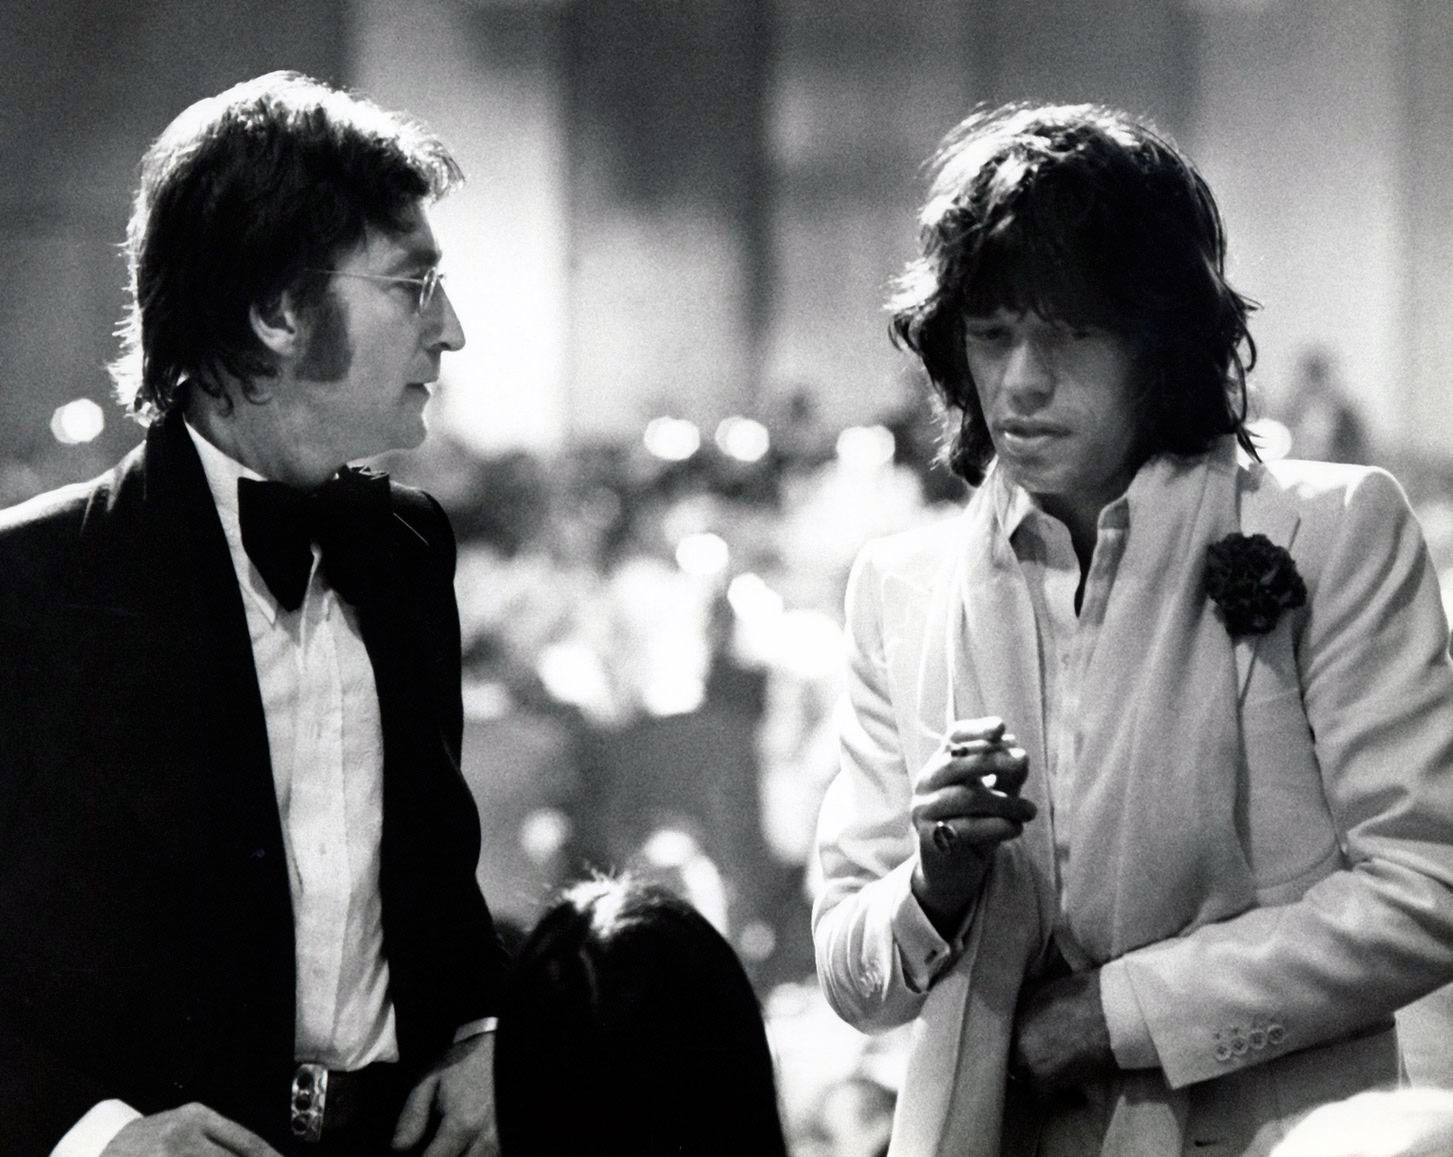 Lennon and Jagger in 1974 or '75